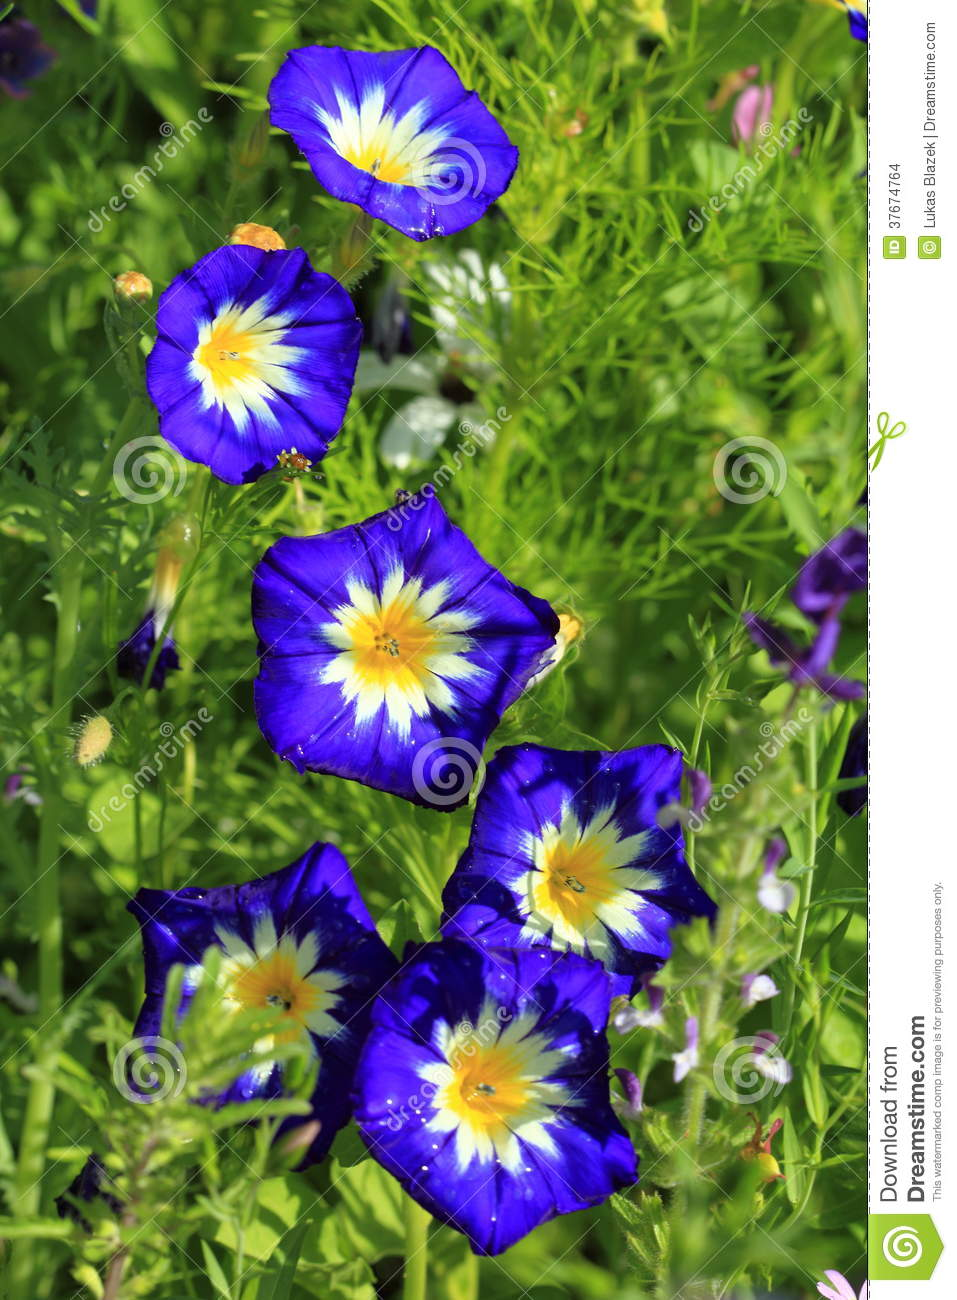 Blue Ipomea Flower Stock Photo Image Of Flower White 37674764